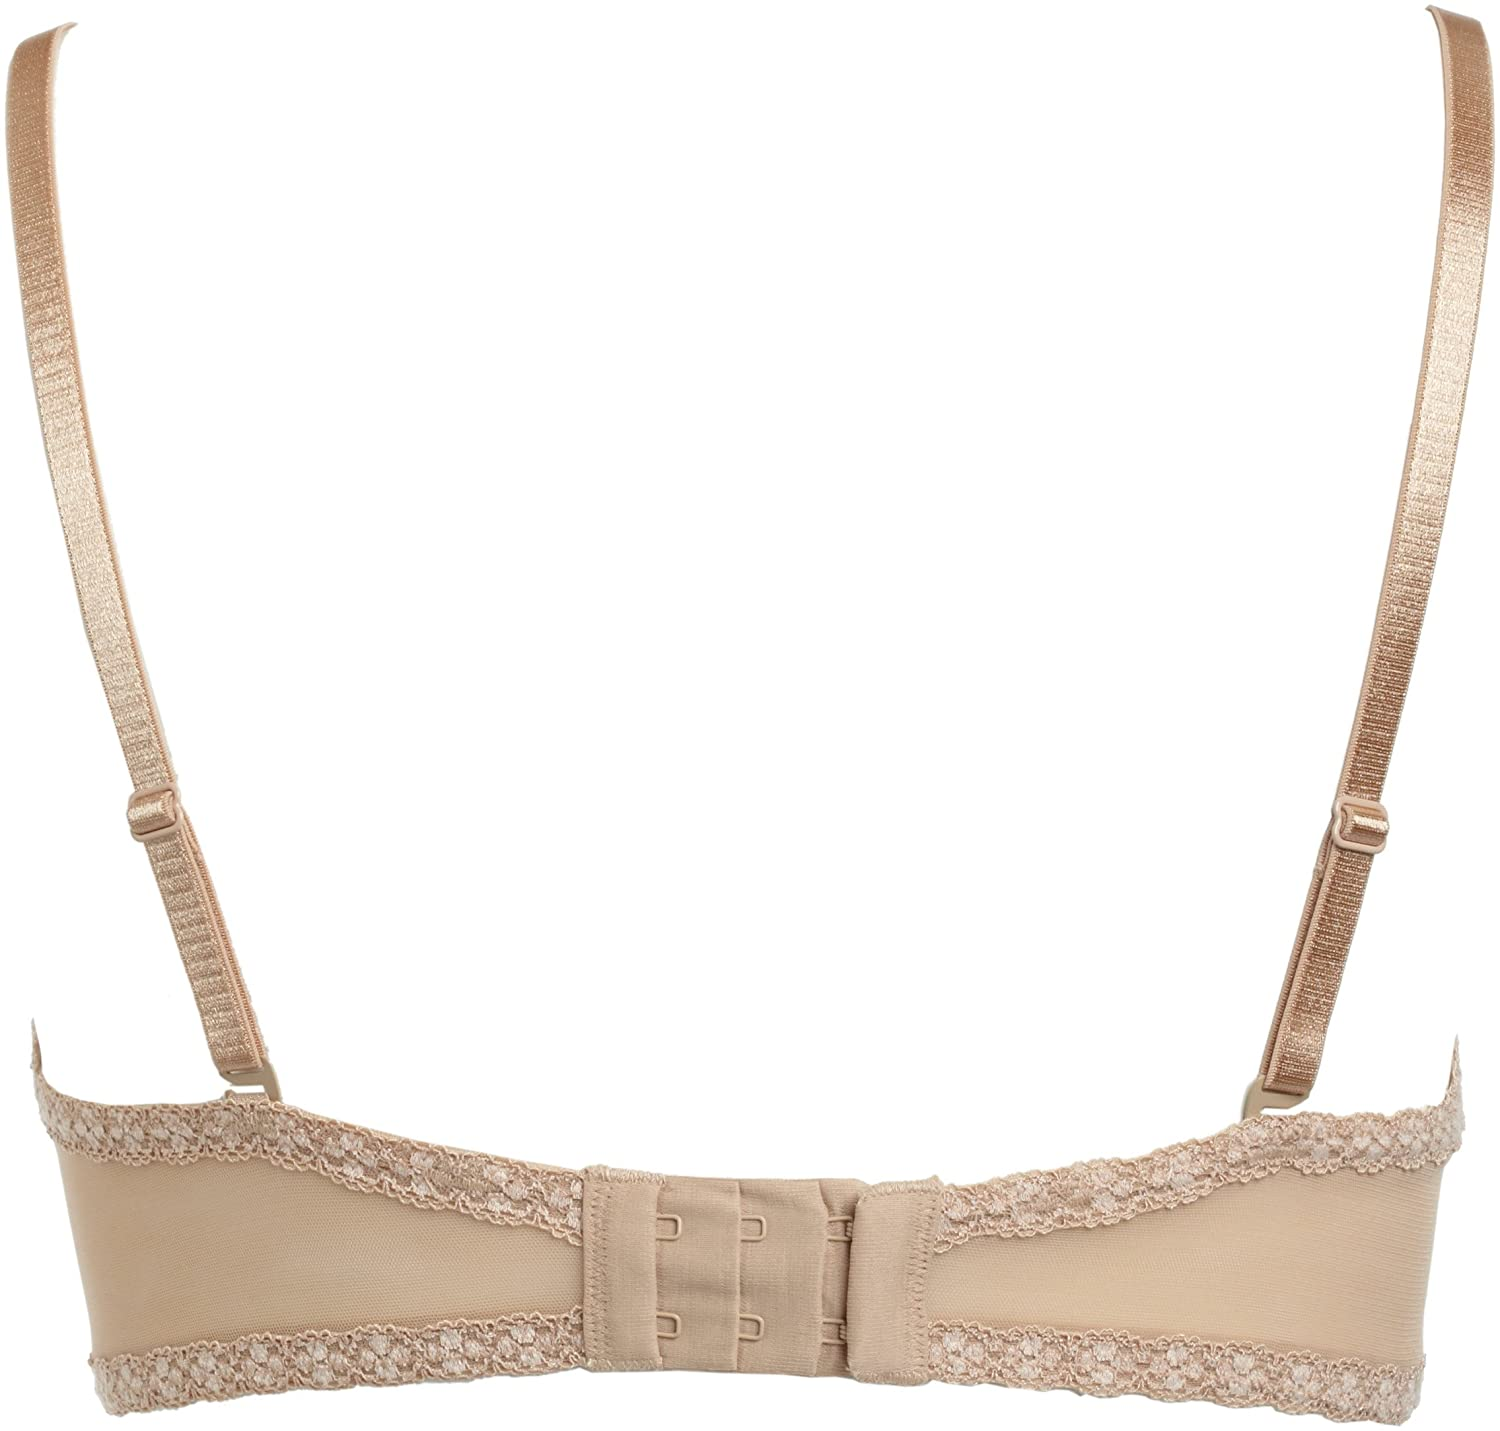 b.temptd by Wacoal Womens Faithfully Yours Strapless Bra